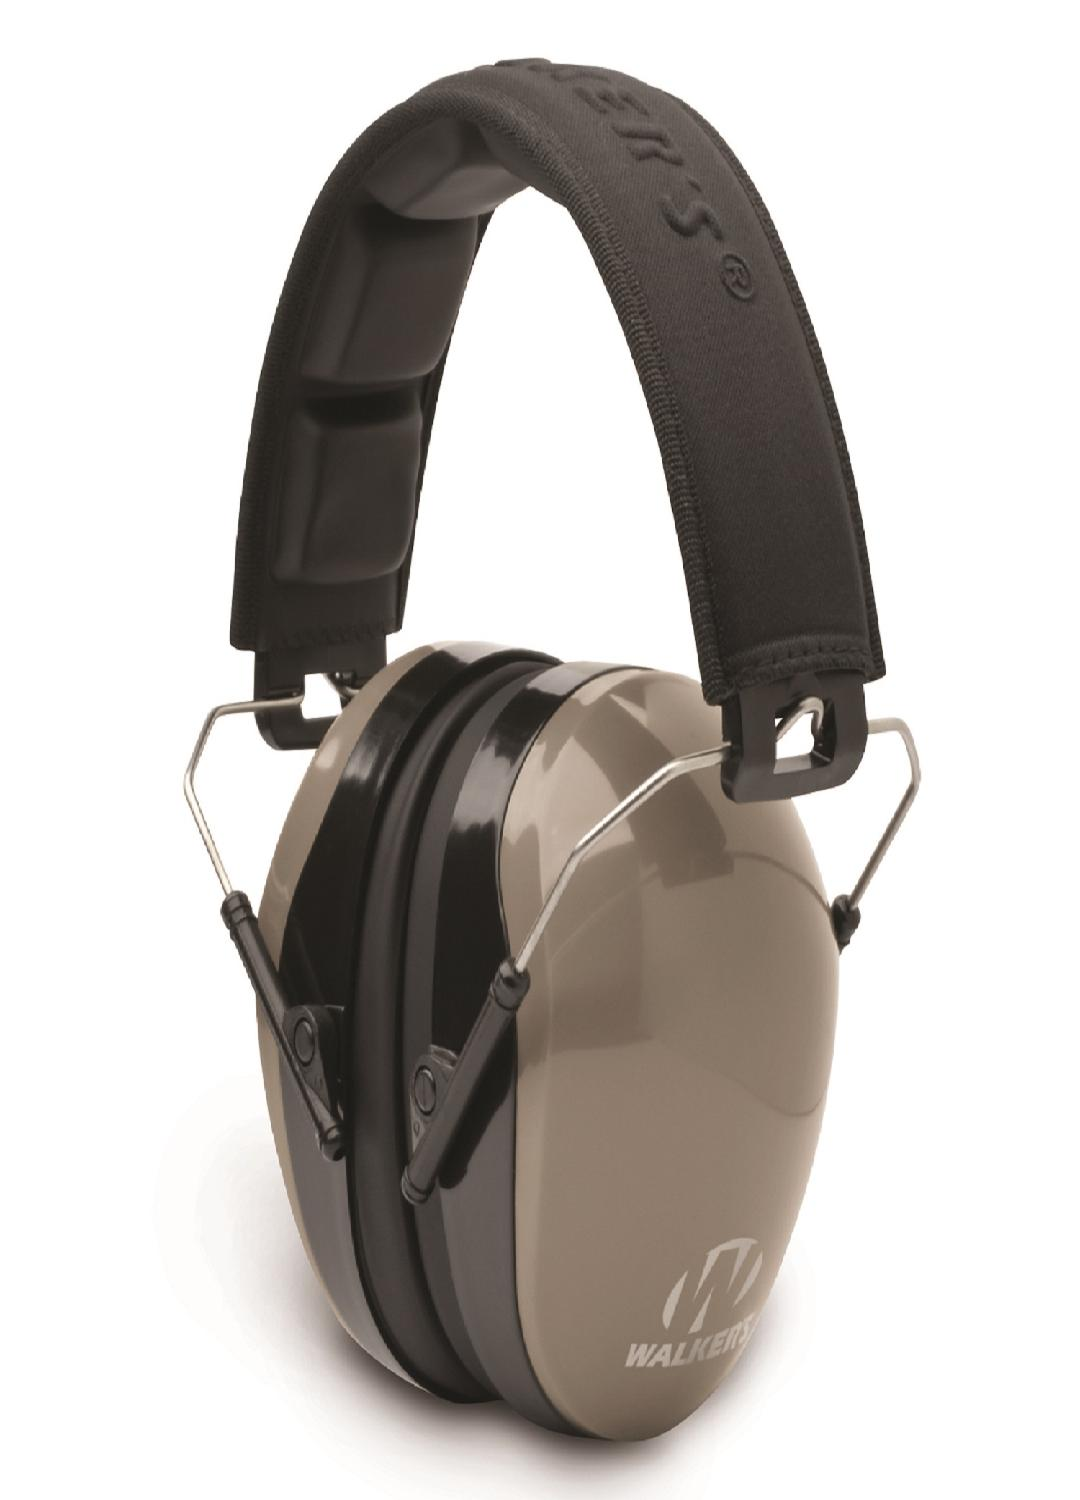 Obedient Pro 9 Ear Hearing Protection Defenders Muffs By Napier Shooting Hunting Other Sporting Goods Sporting Goods